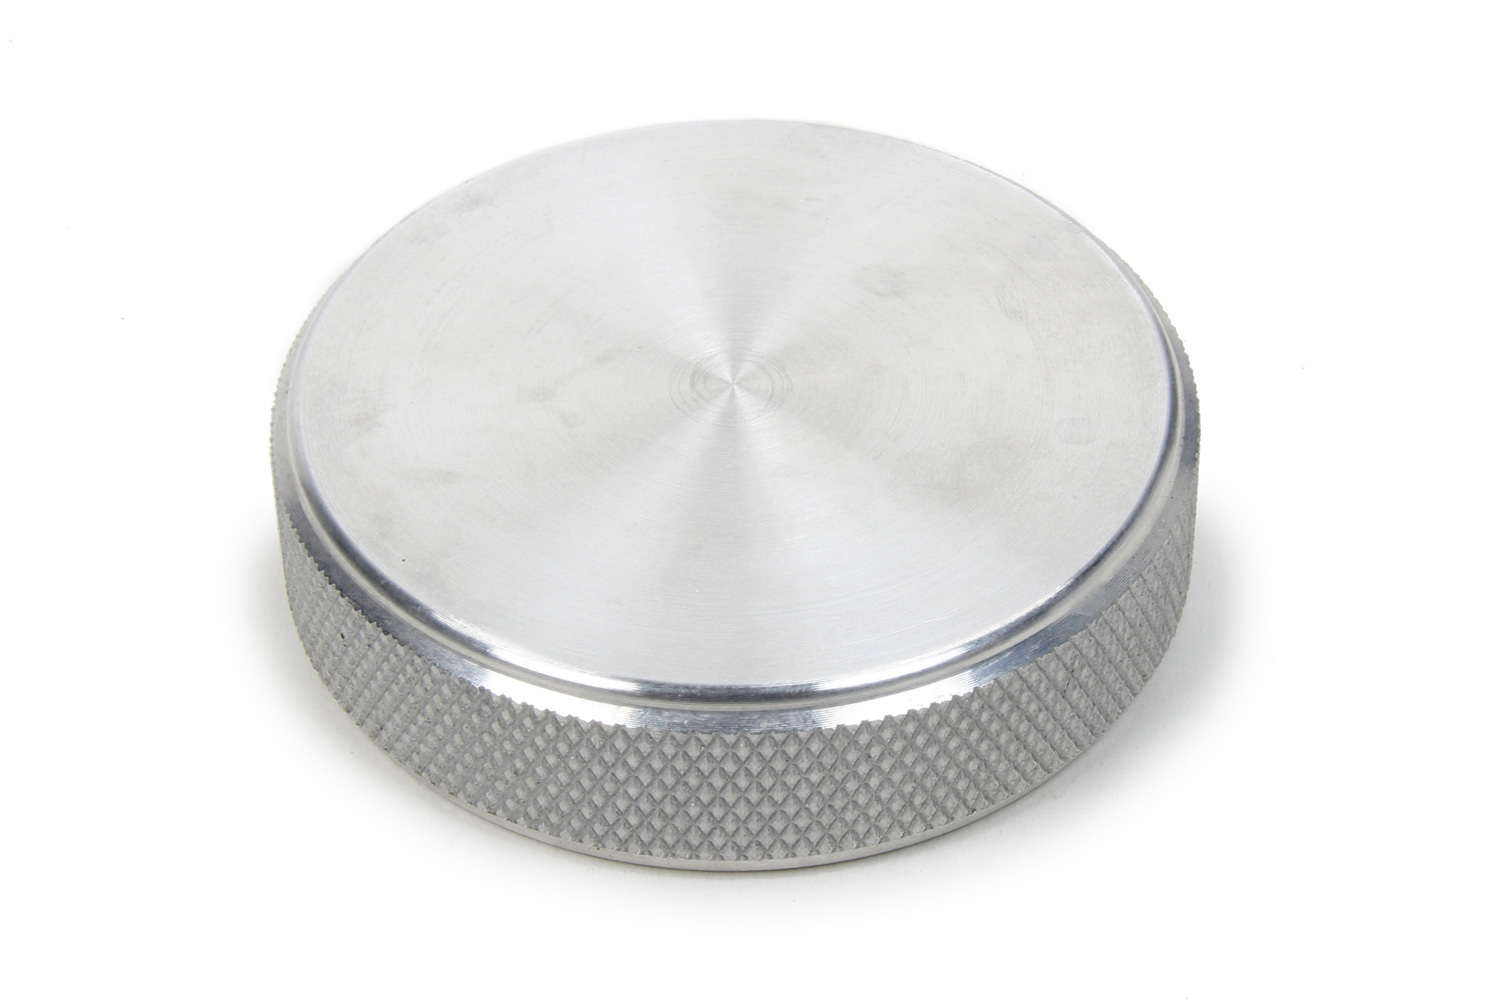 RCI 7032C Fuel Cell Filler Cap, Screw-On, 2-3/4 in OD, Billet Aluminum, Natural, RCI Oval Filler Plate, Each